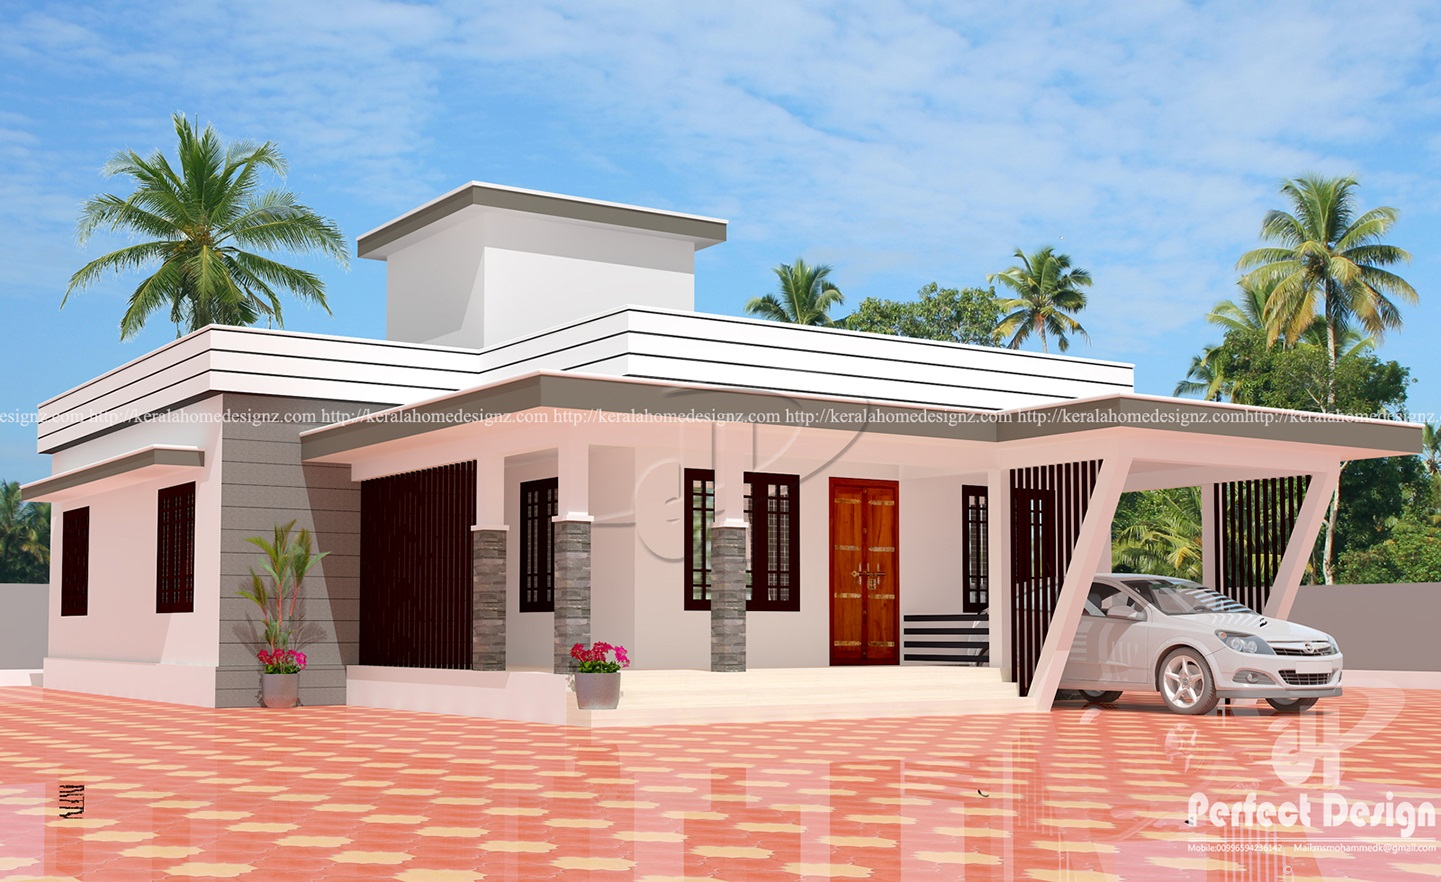 3 Bedroom Modern Flat Roof House Layout Kerala Home Design